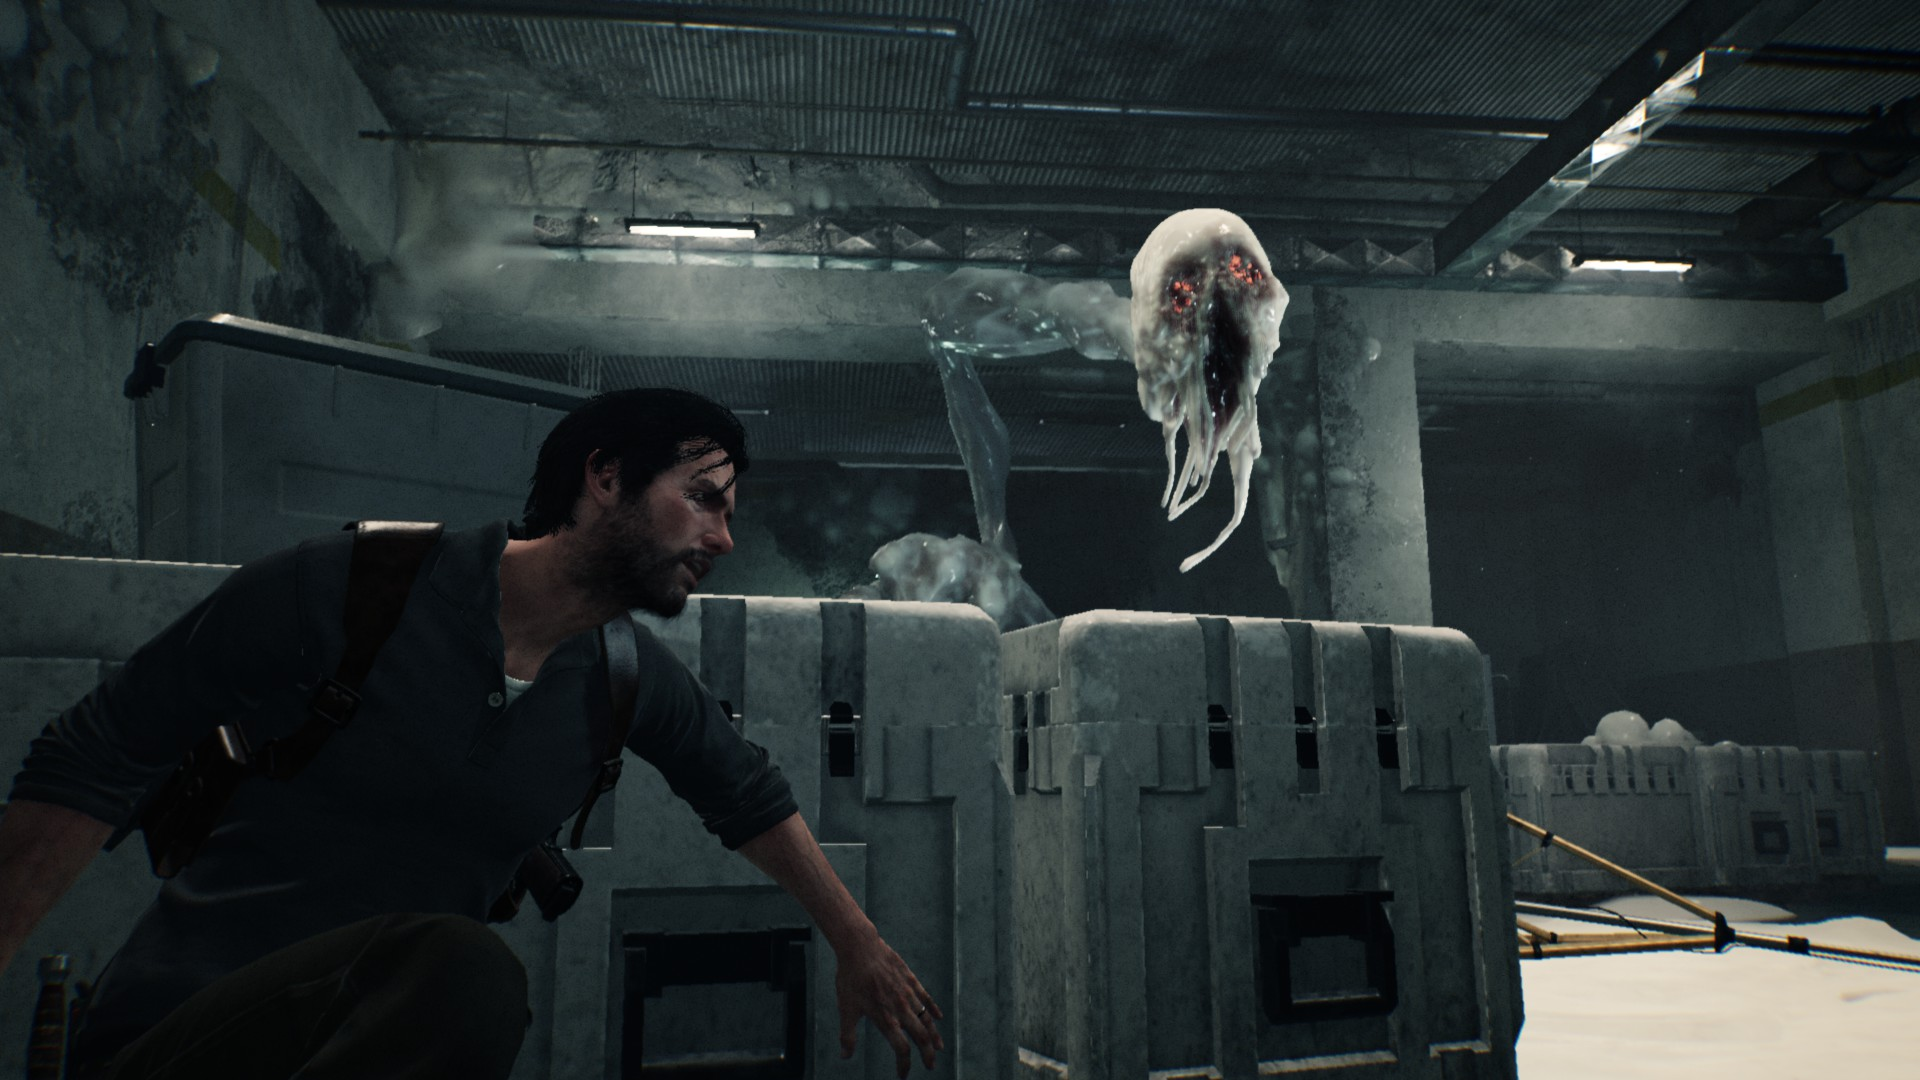 20181123092347_1.jpg - Evil Within 2, the